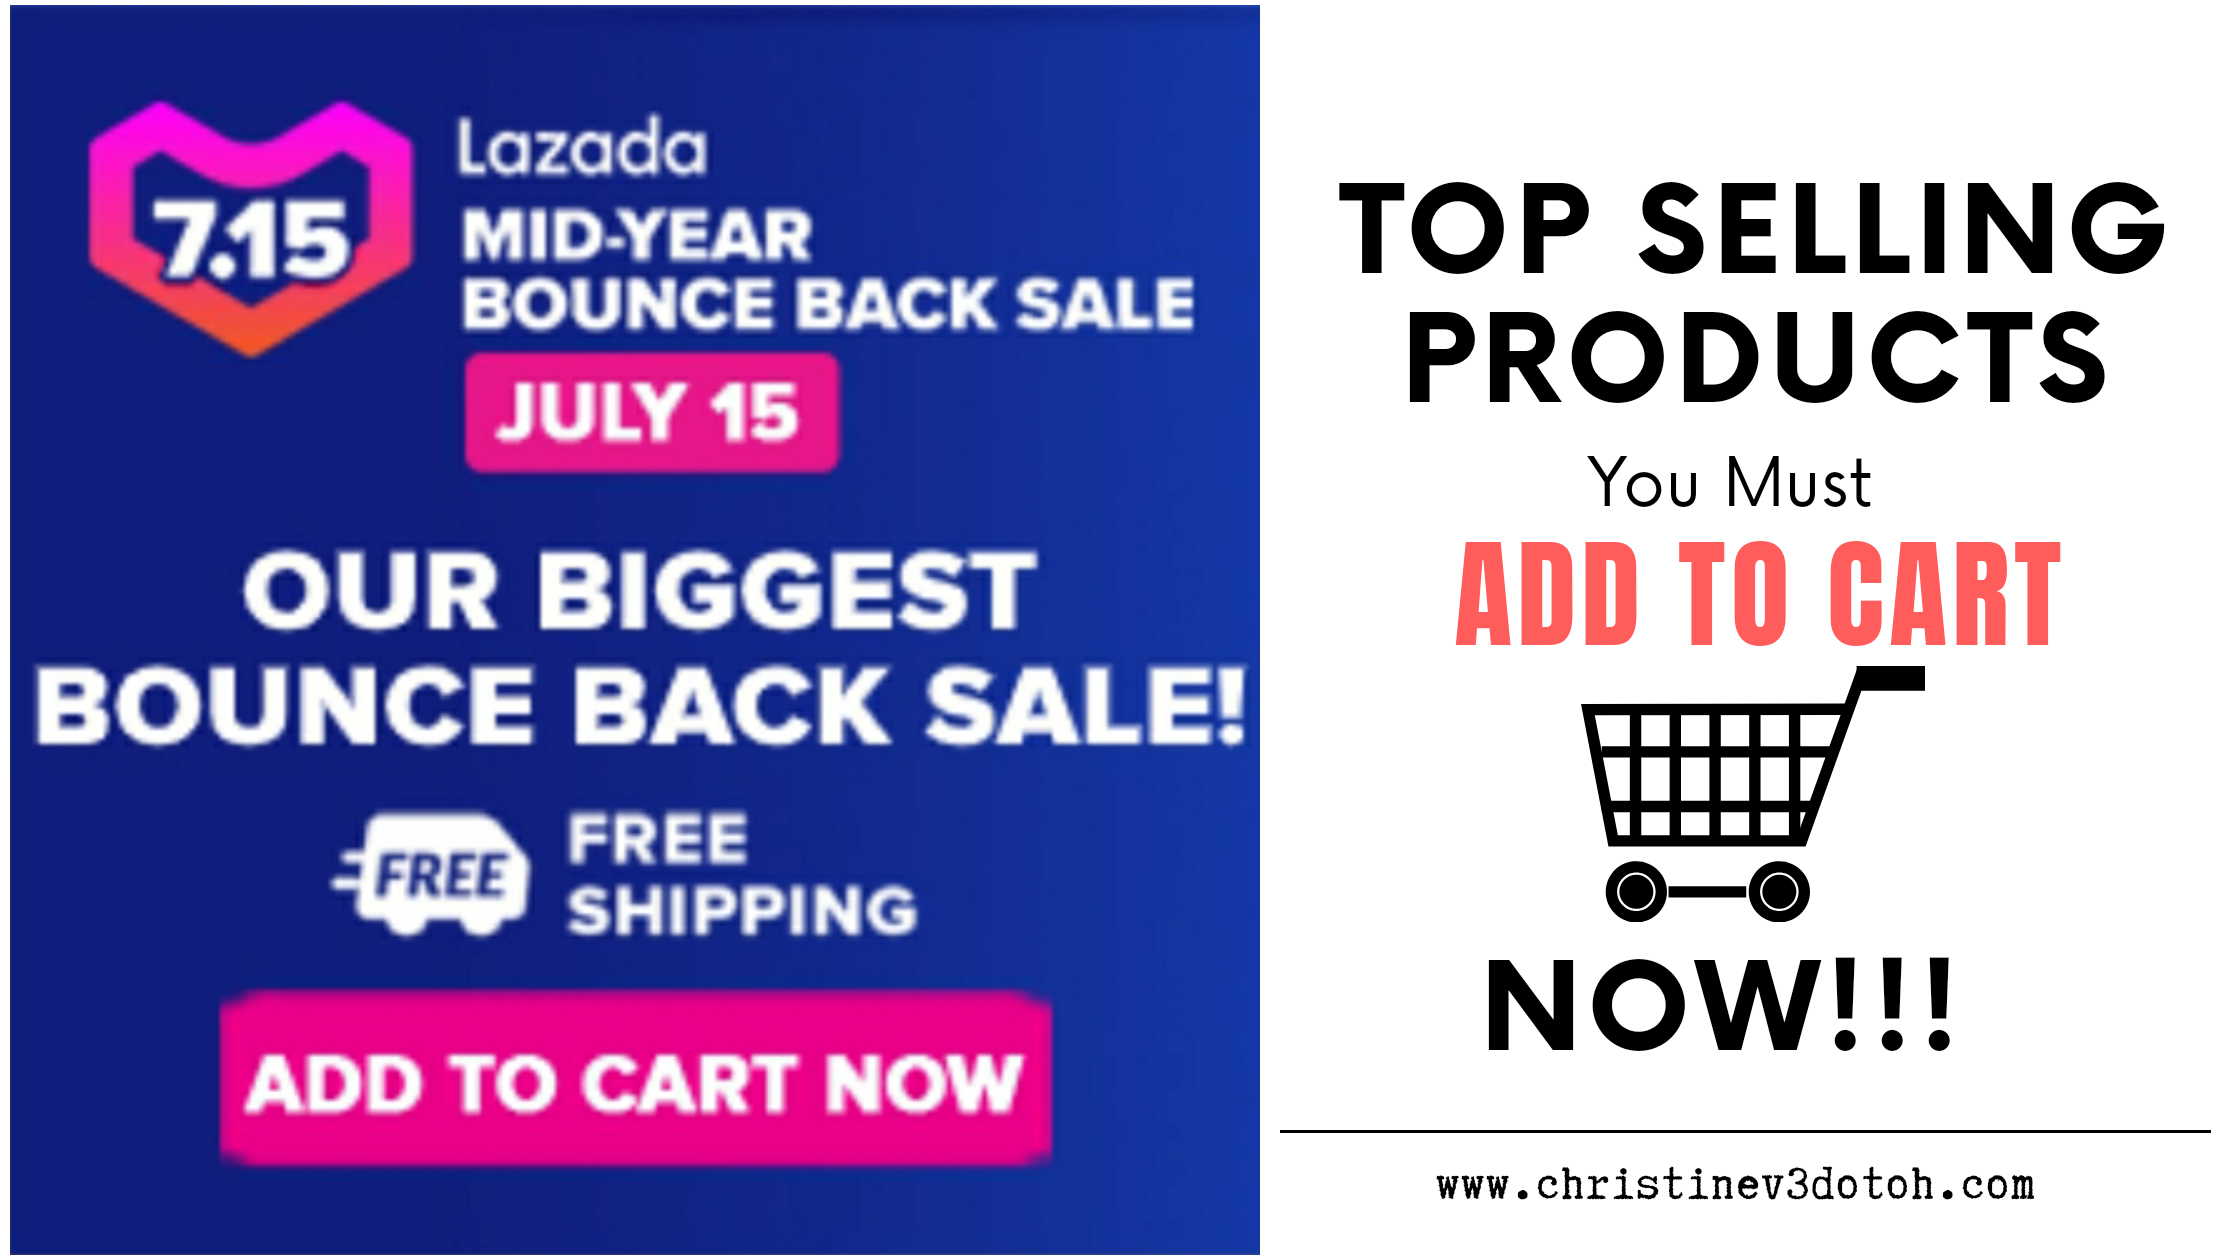 Top Selling Products You Must Add to Cart Now for Lazada Mid-Year Bounce Back Sale (July 15, 2020)